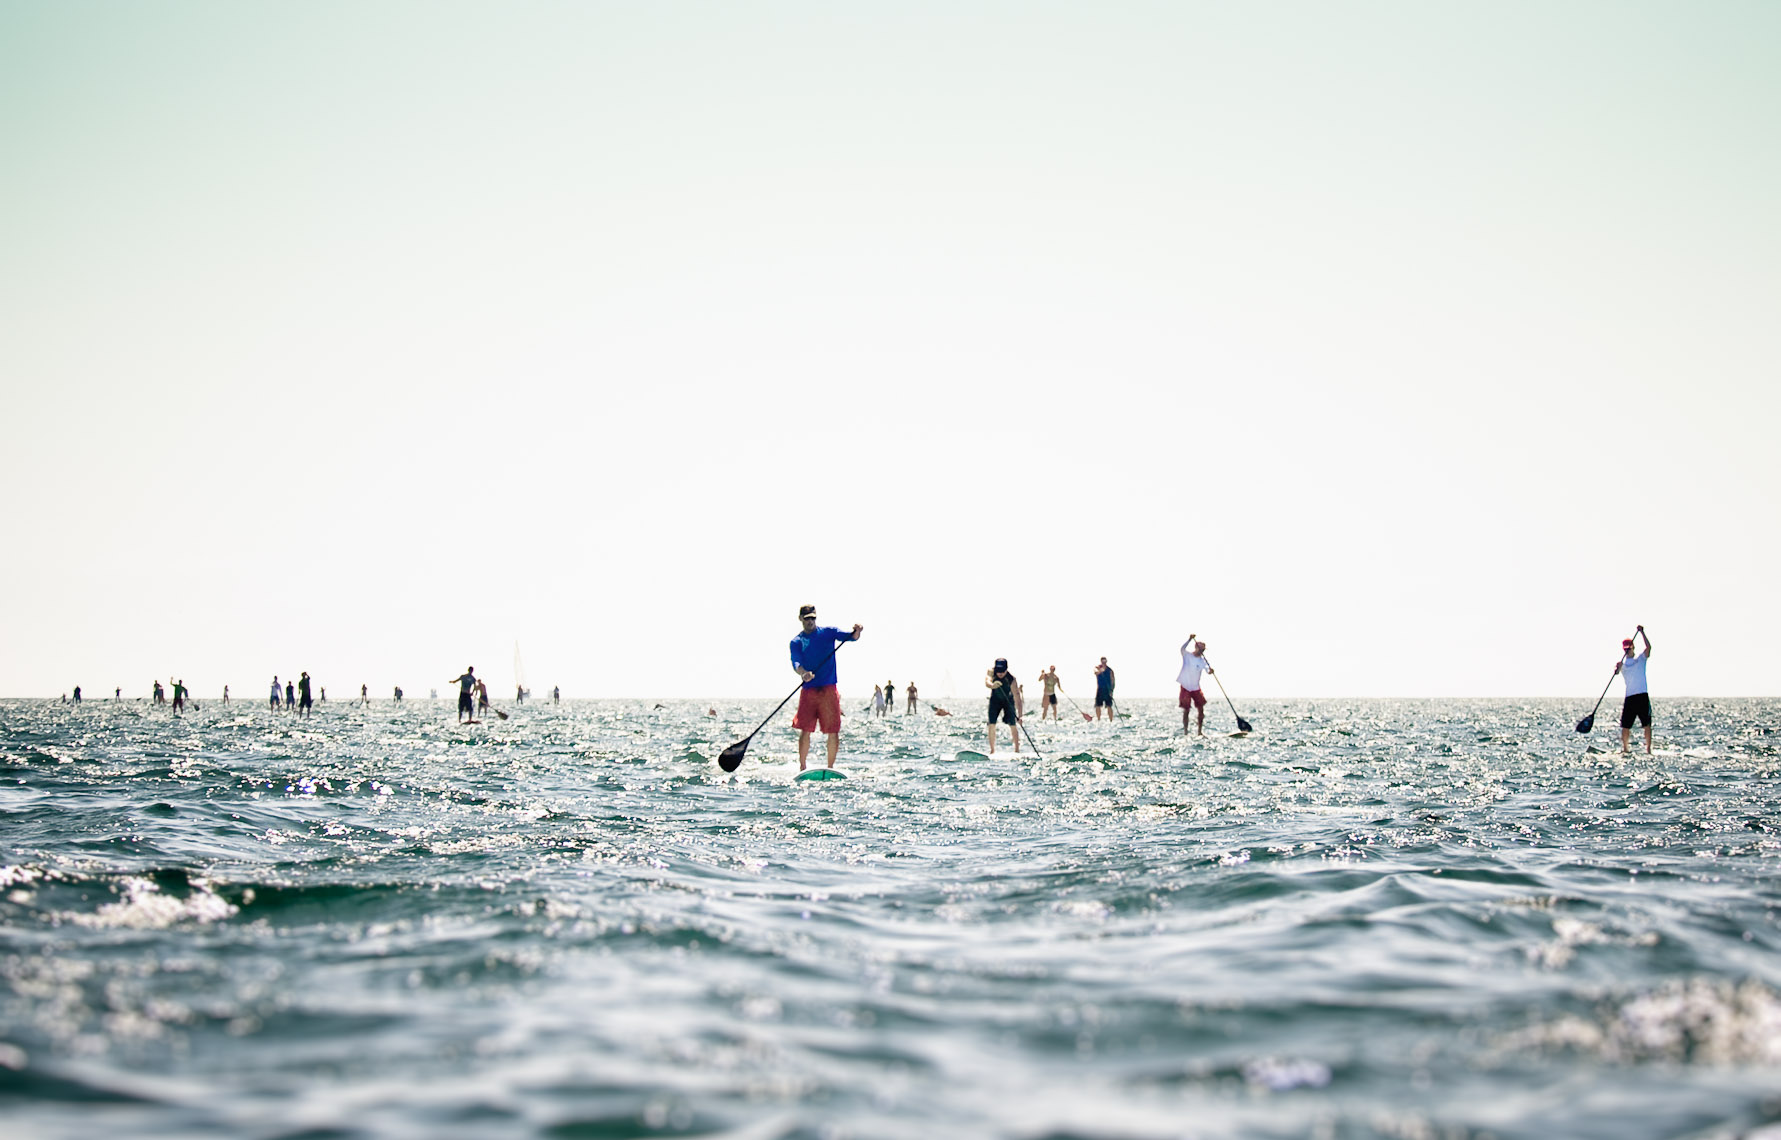 Kevin Steele - group of stand up paddleboarders in the ocean